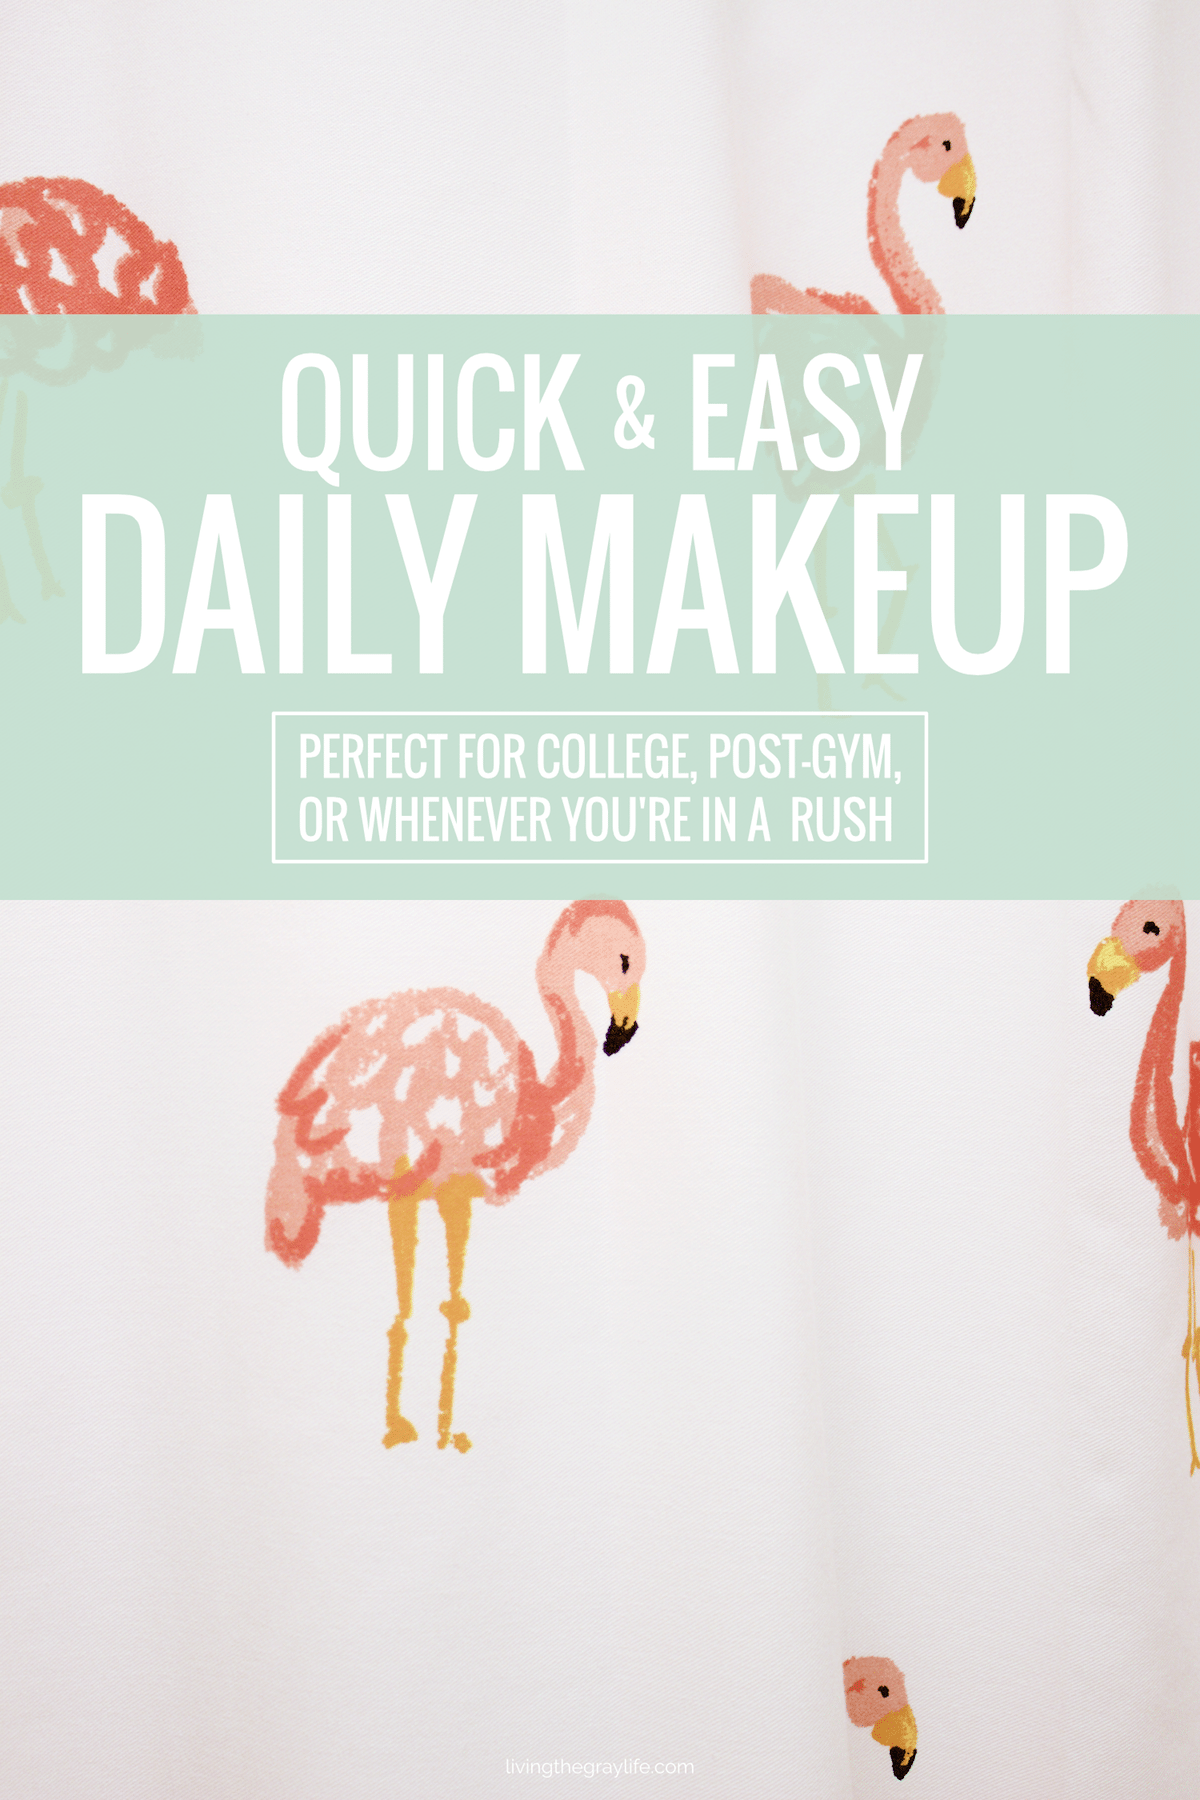 Quick & easy daily makeup perfect for college students, post-gym routines, or if you're in a rush!